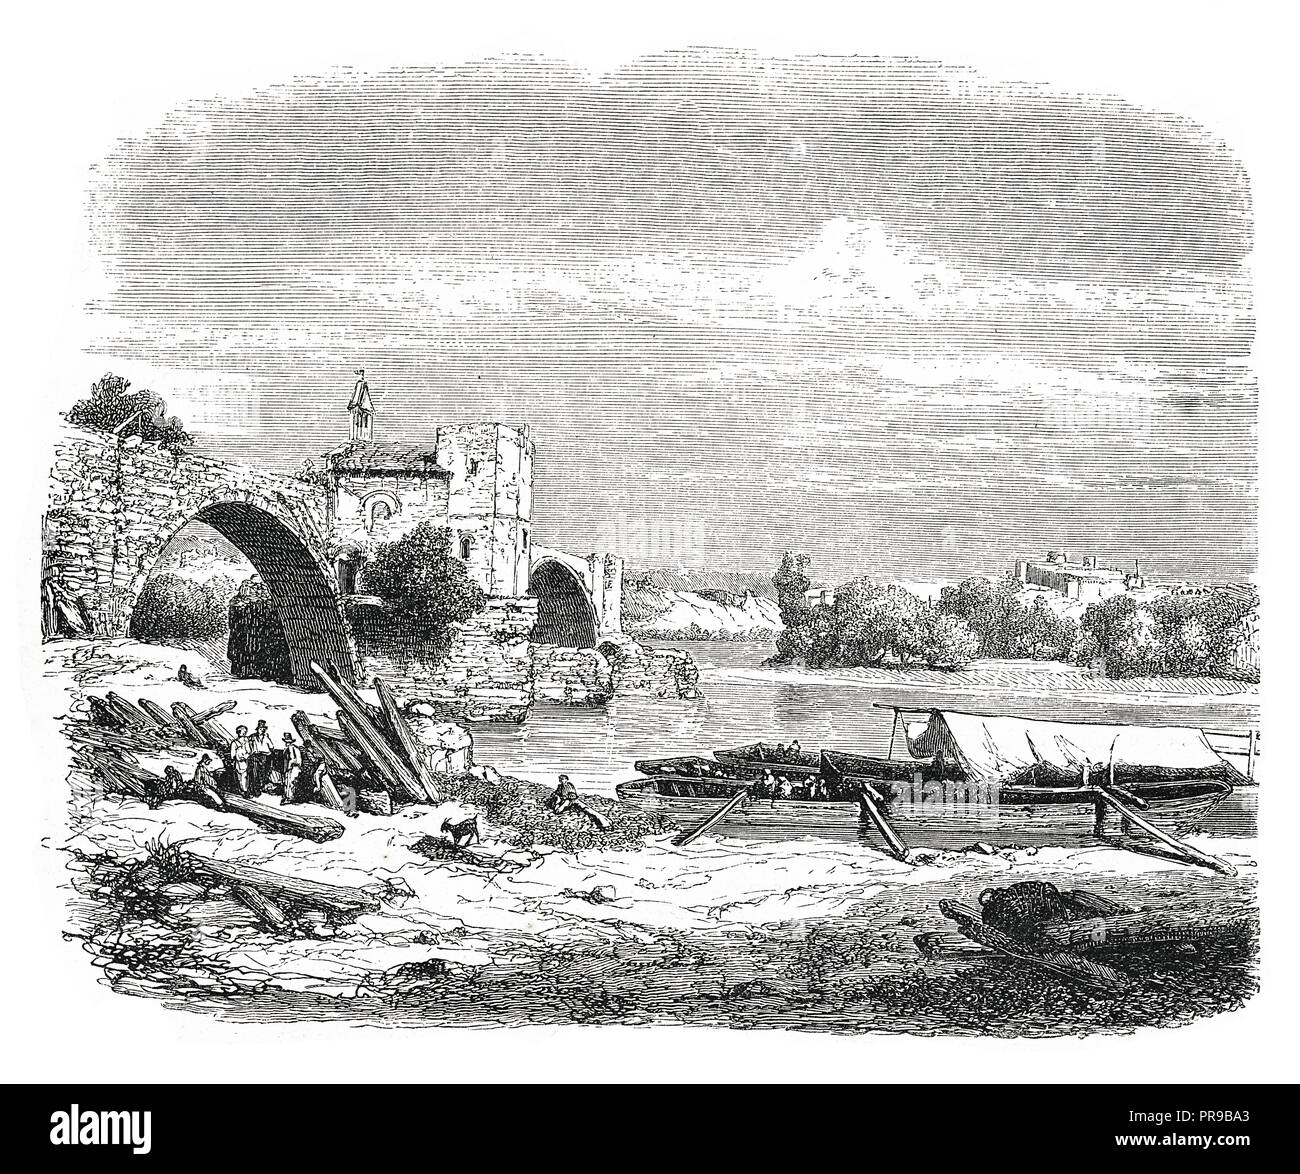 19th century illustration of ruins' bridge St. Benezel, in Avignon, by M. Thuillier. Original artwork published in Le magasin Pittoresque by M. A. Lac - Stock Image